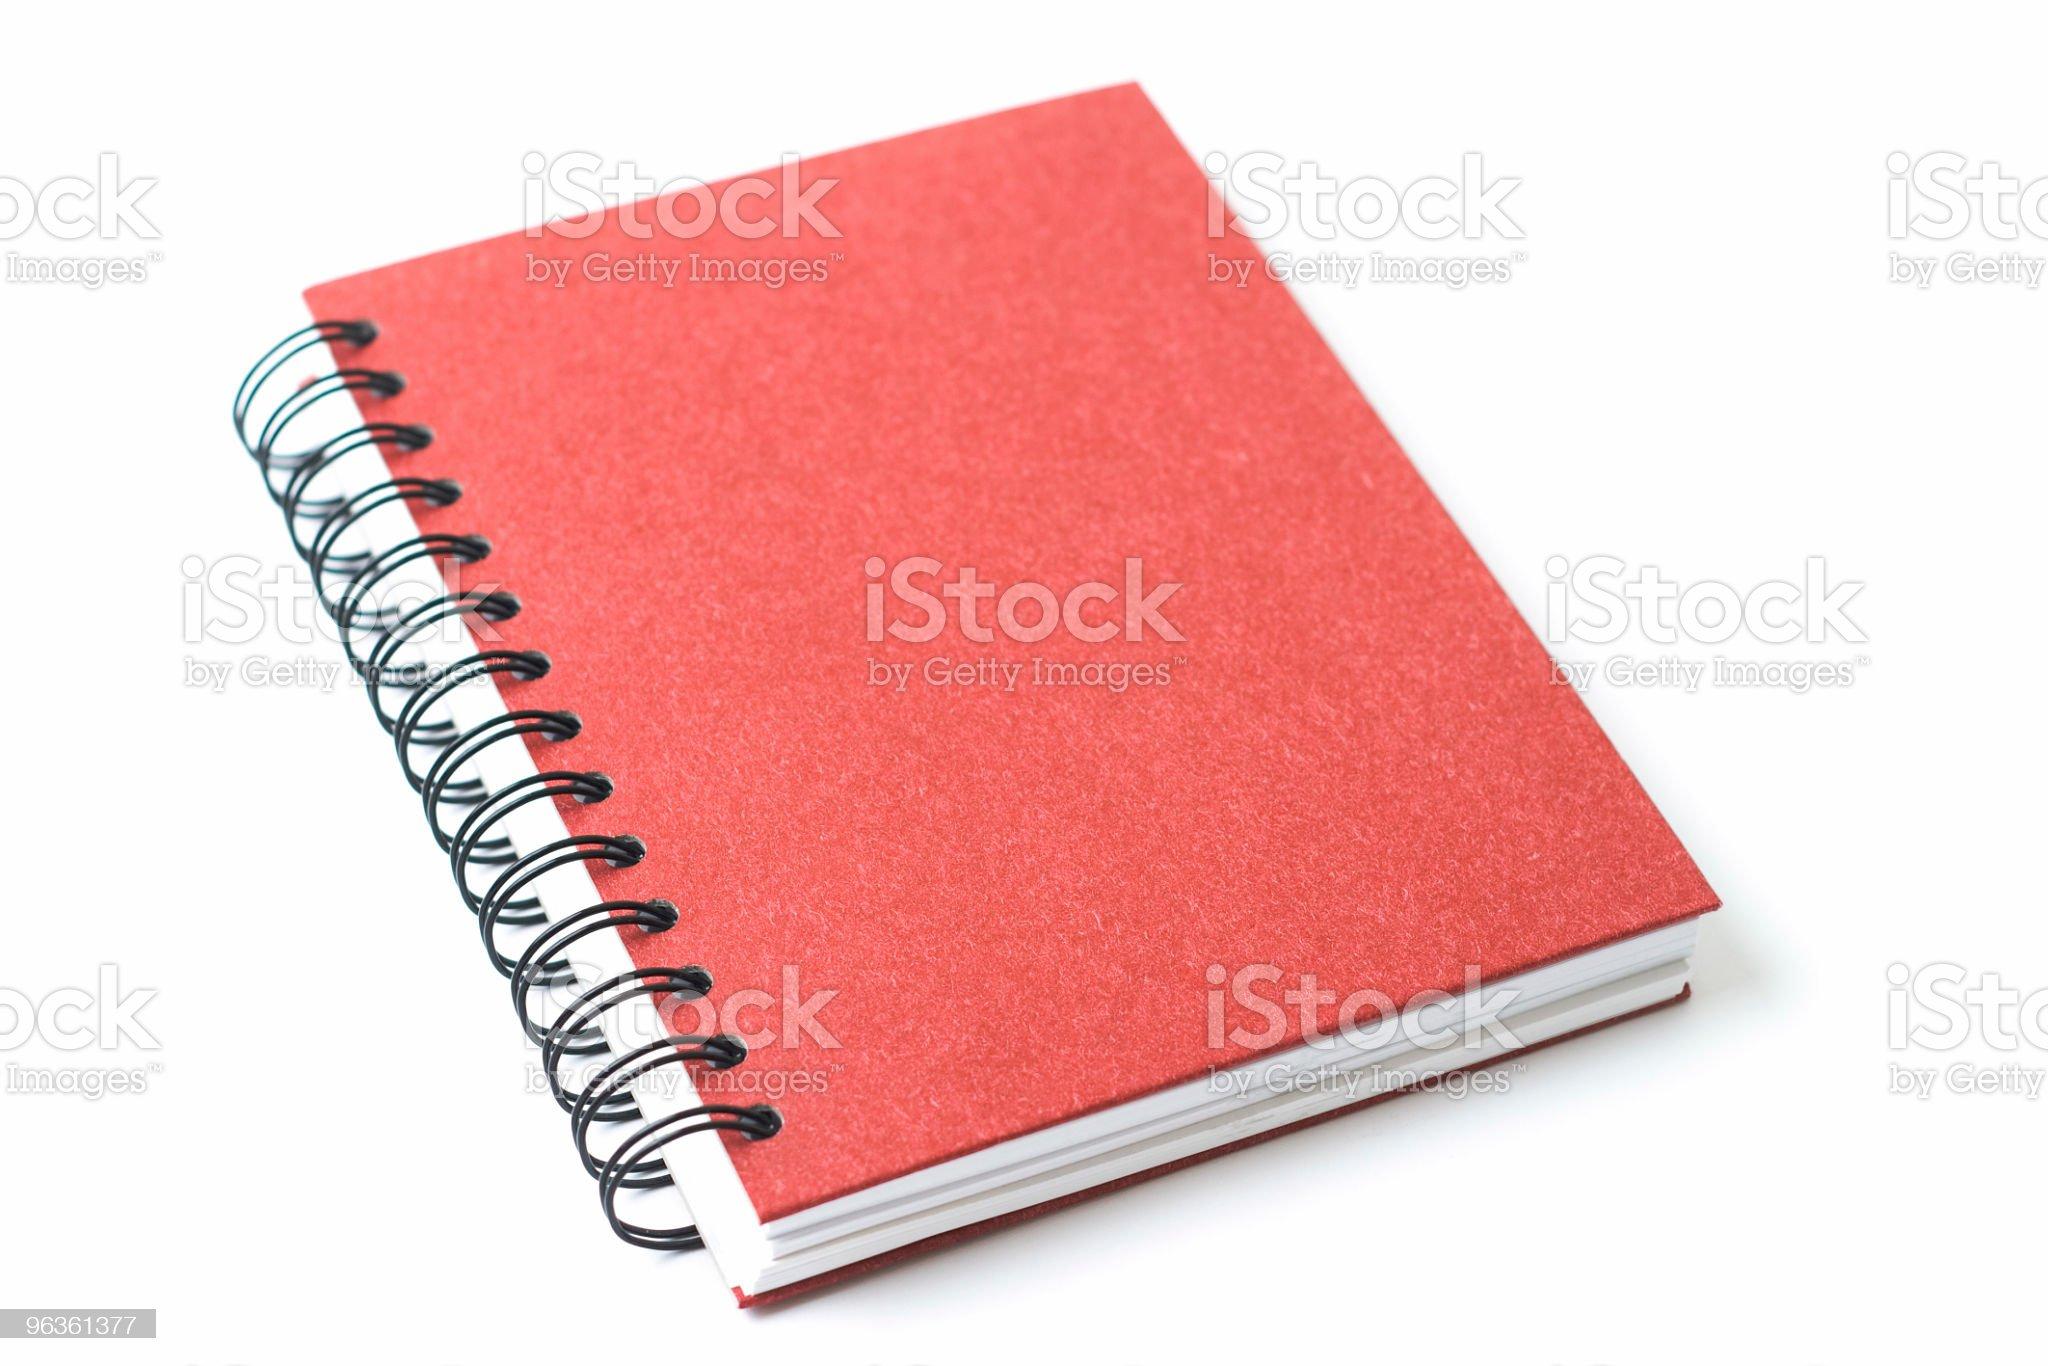 Red ring bound notebook on white background royalty-free stock photo